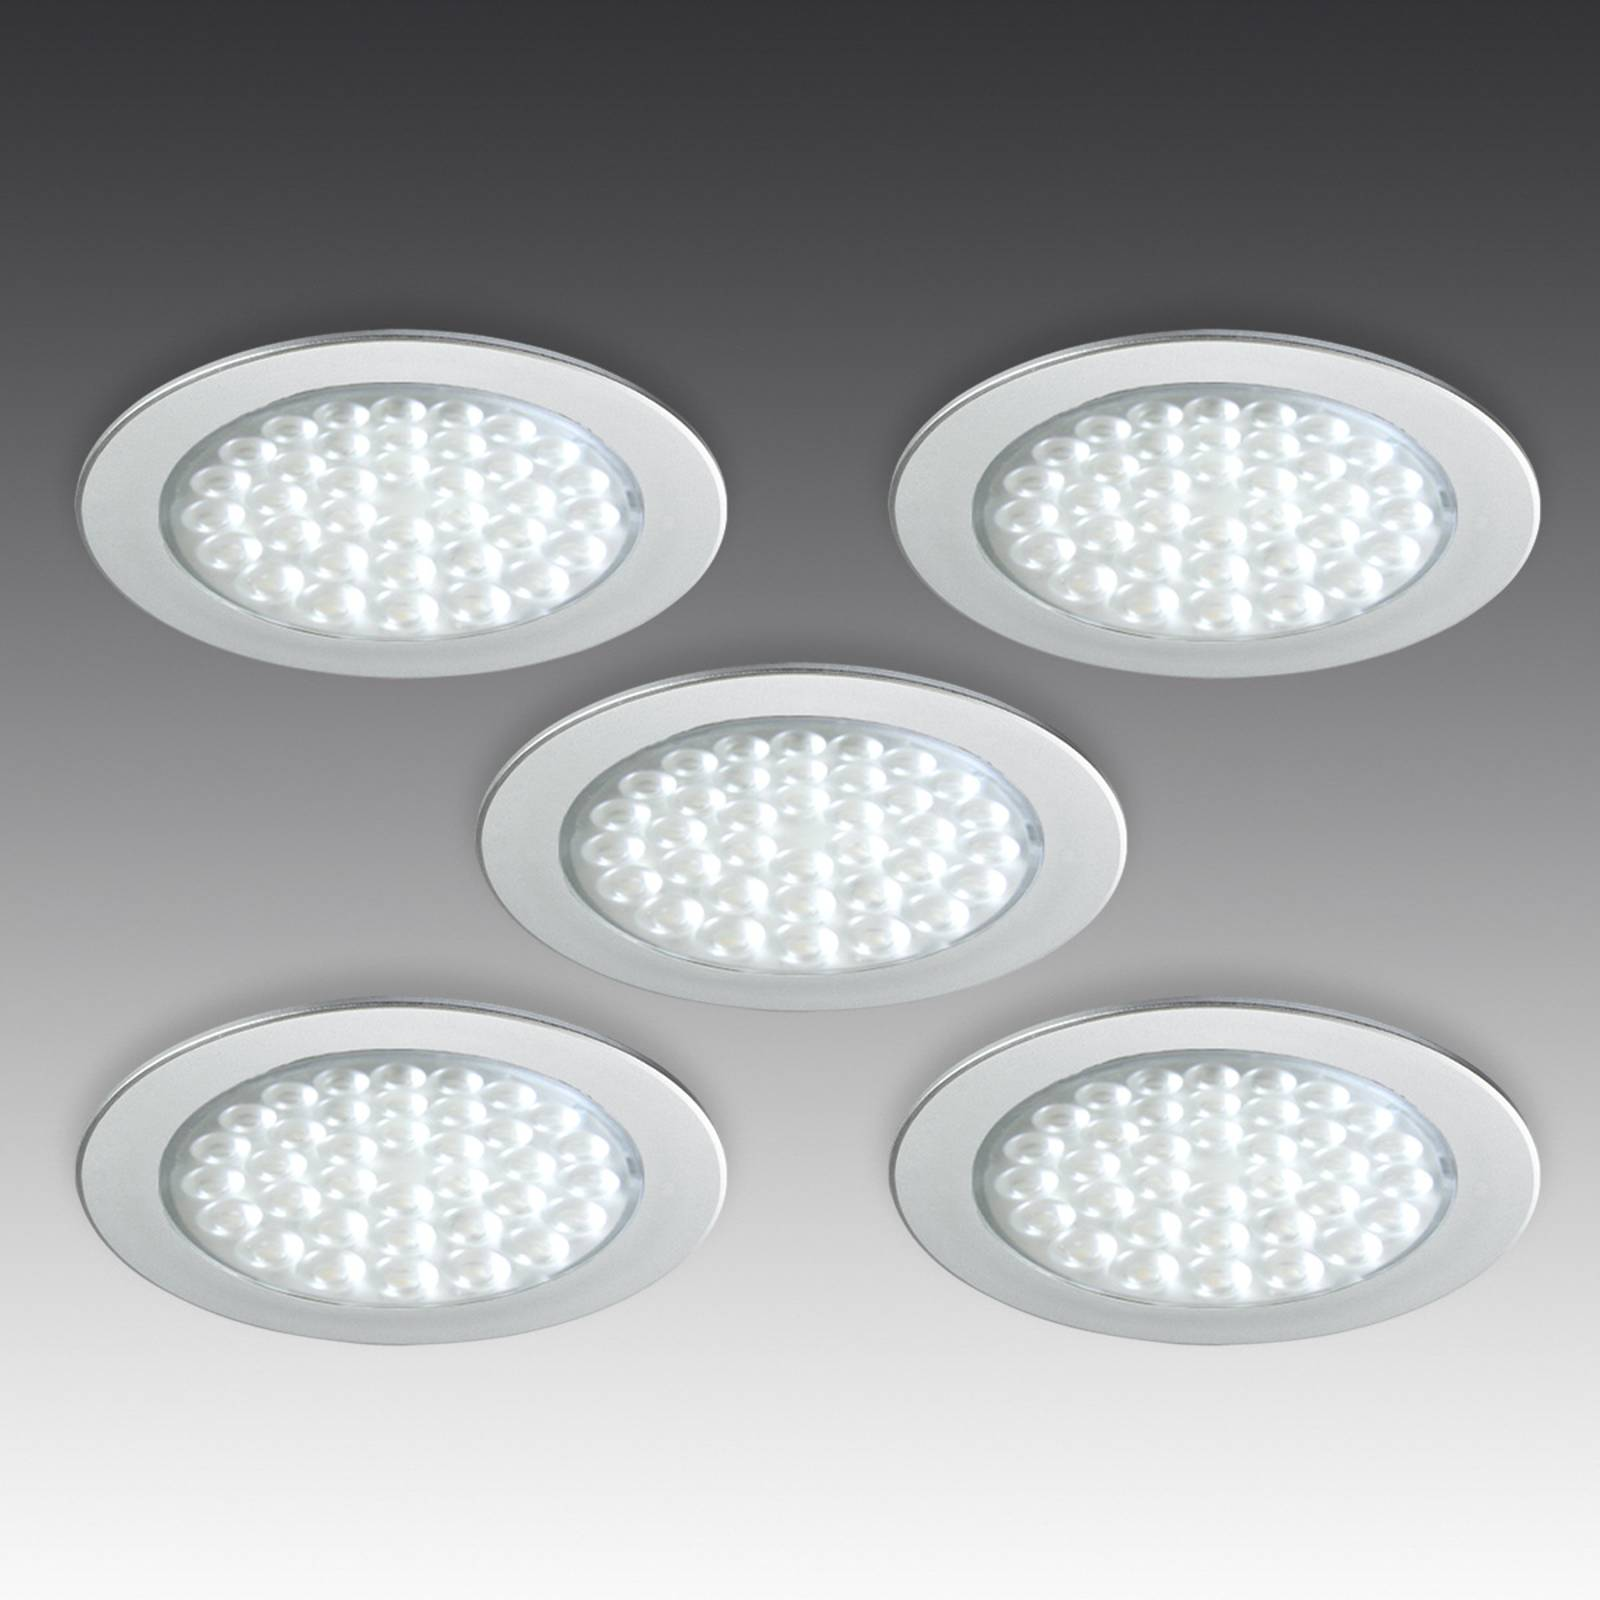 Five R 68 LED recessed lights stainless steel look from HERA